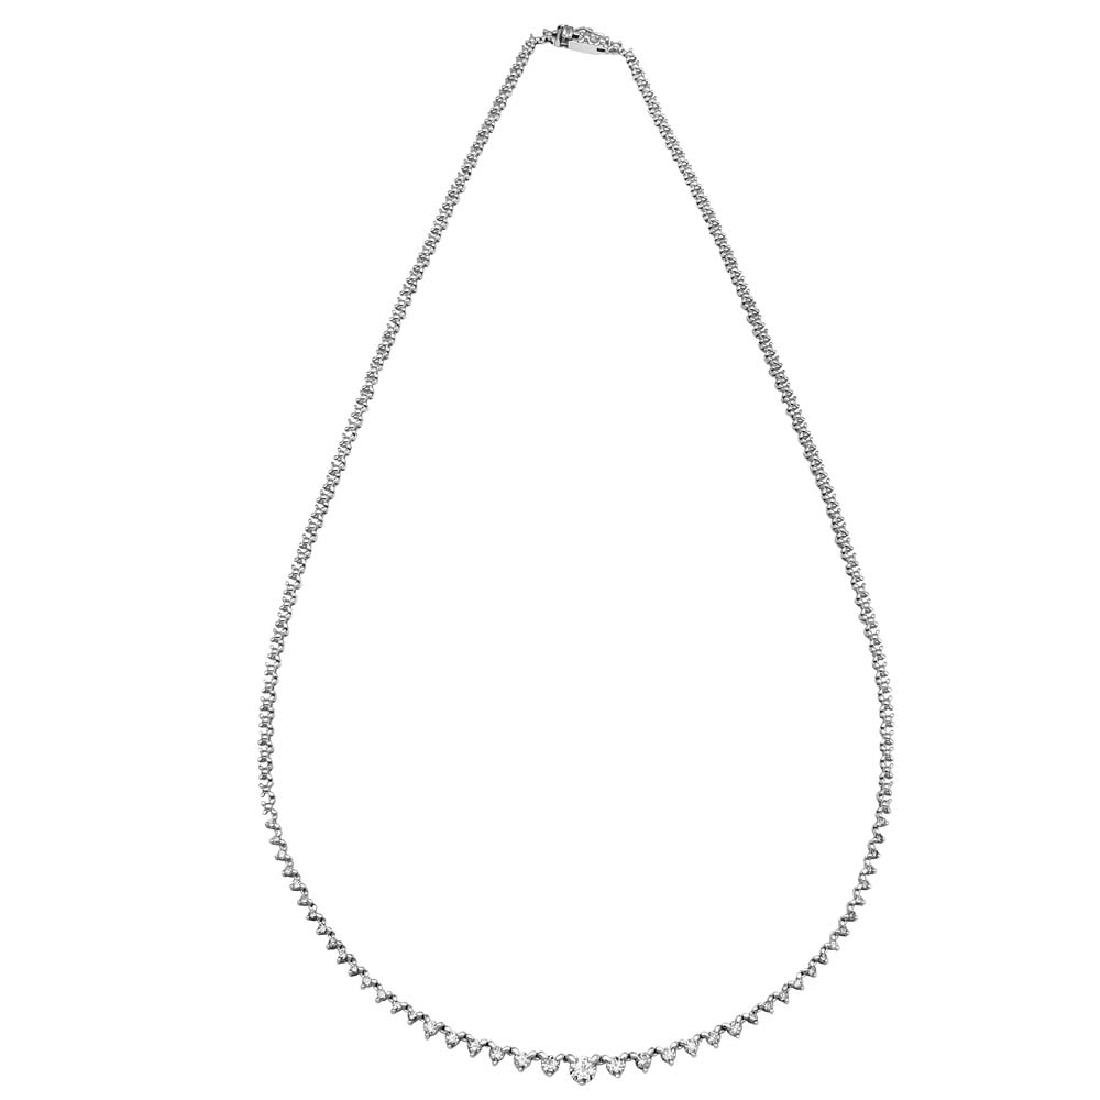 Genuine 0.97 TCW 18K White Gold Ladies Necklace